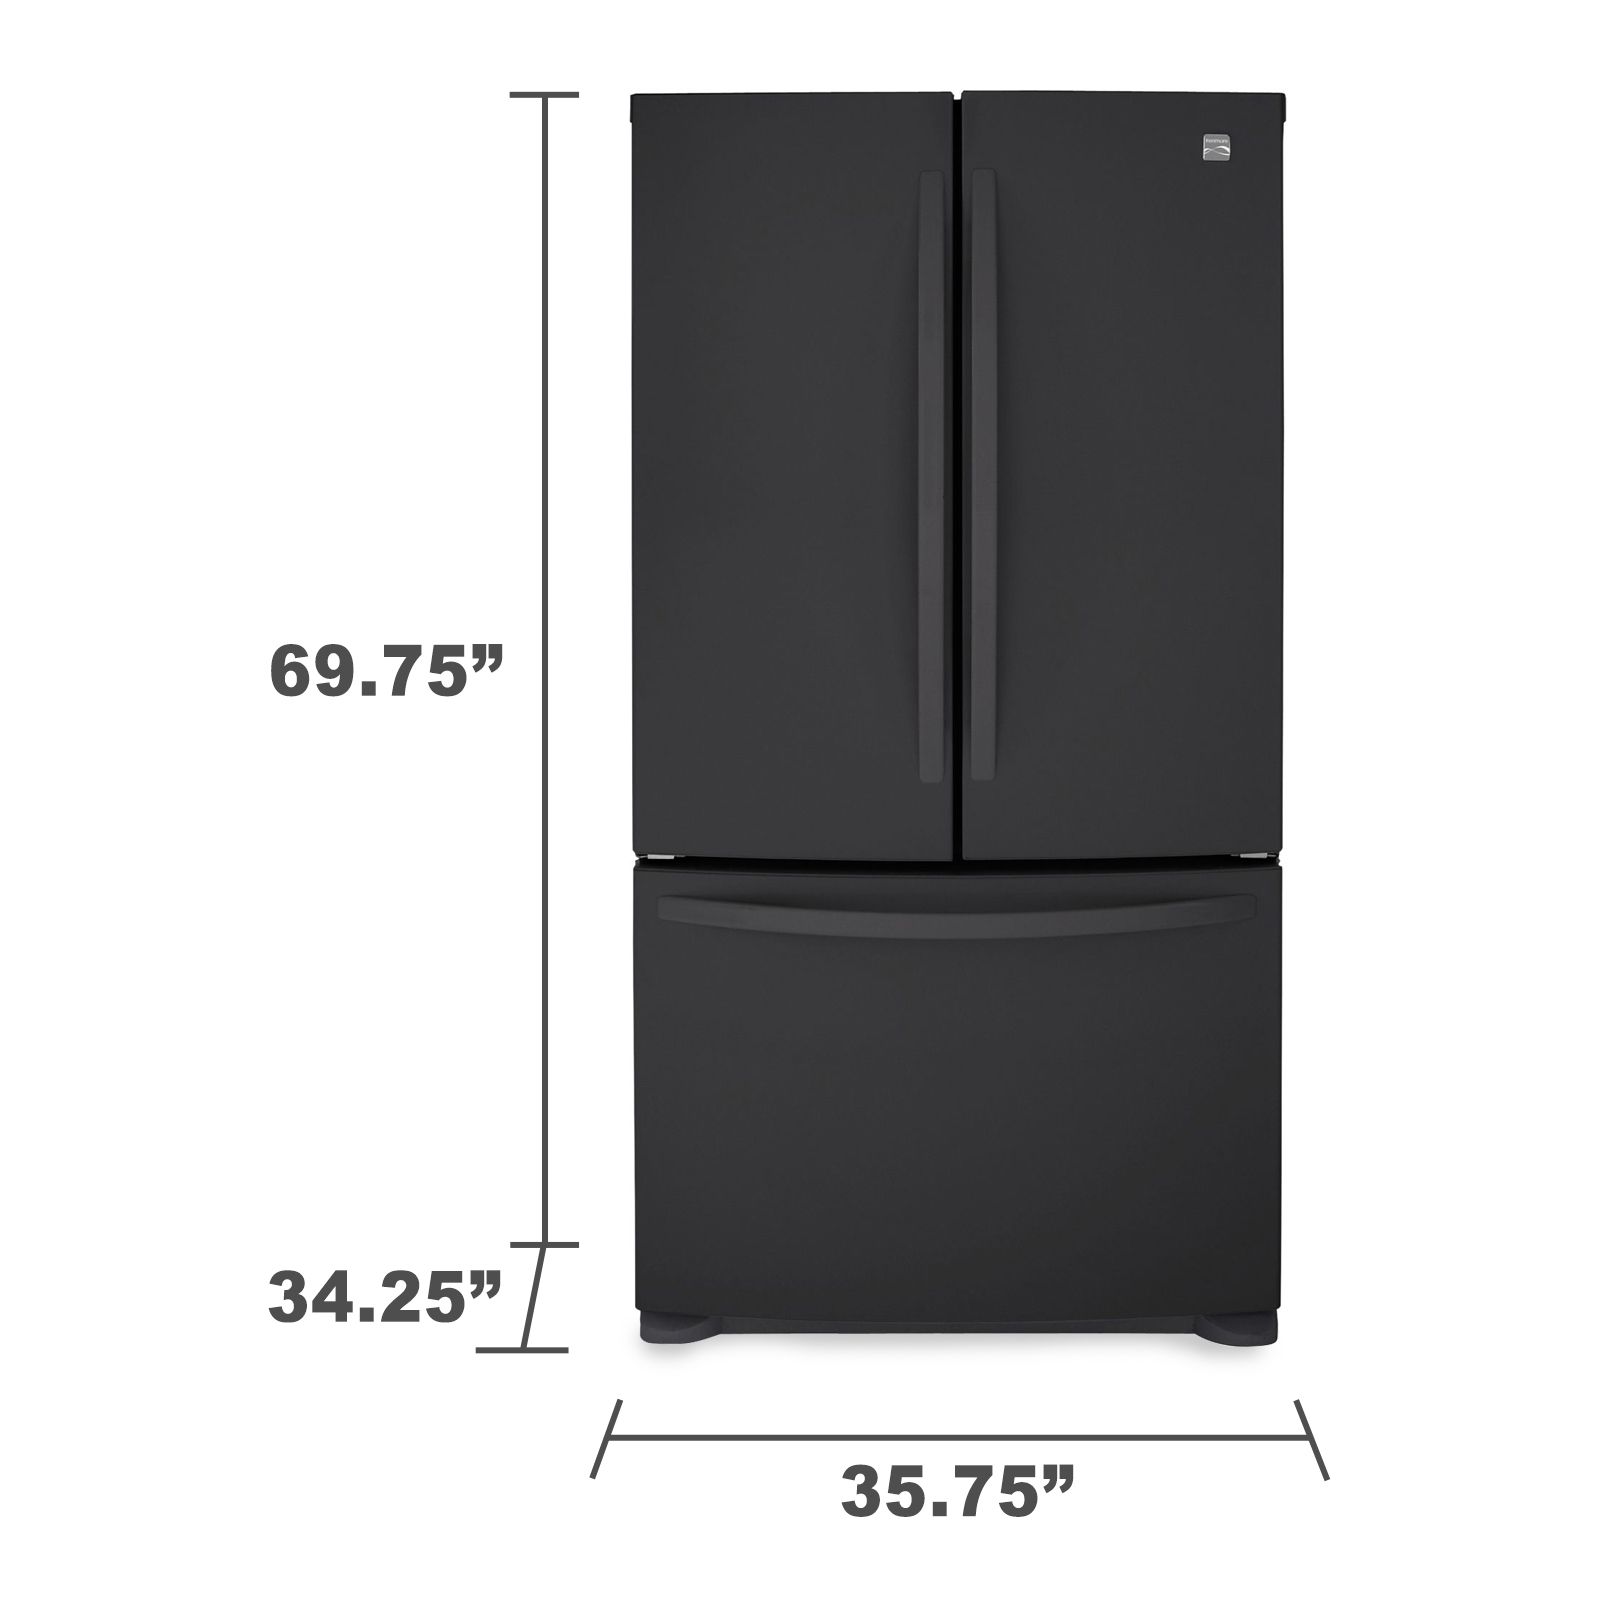 Kenmore 25.4 cu. ft. French Door Bottom-Freezer Refrigerator - Black